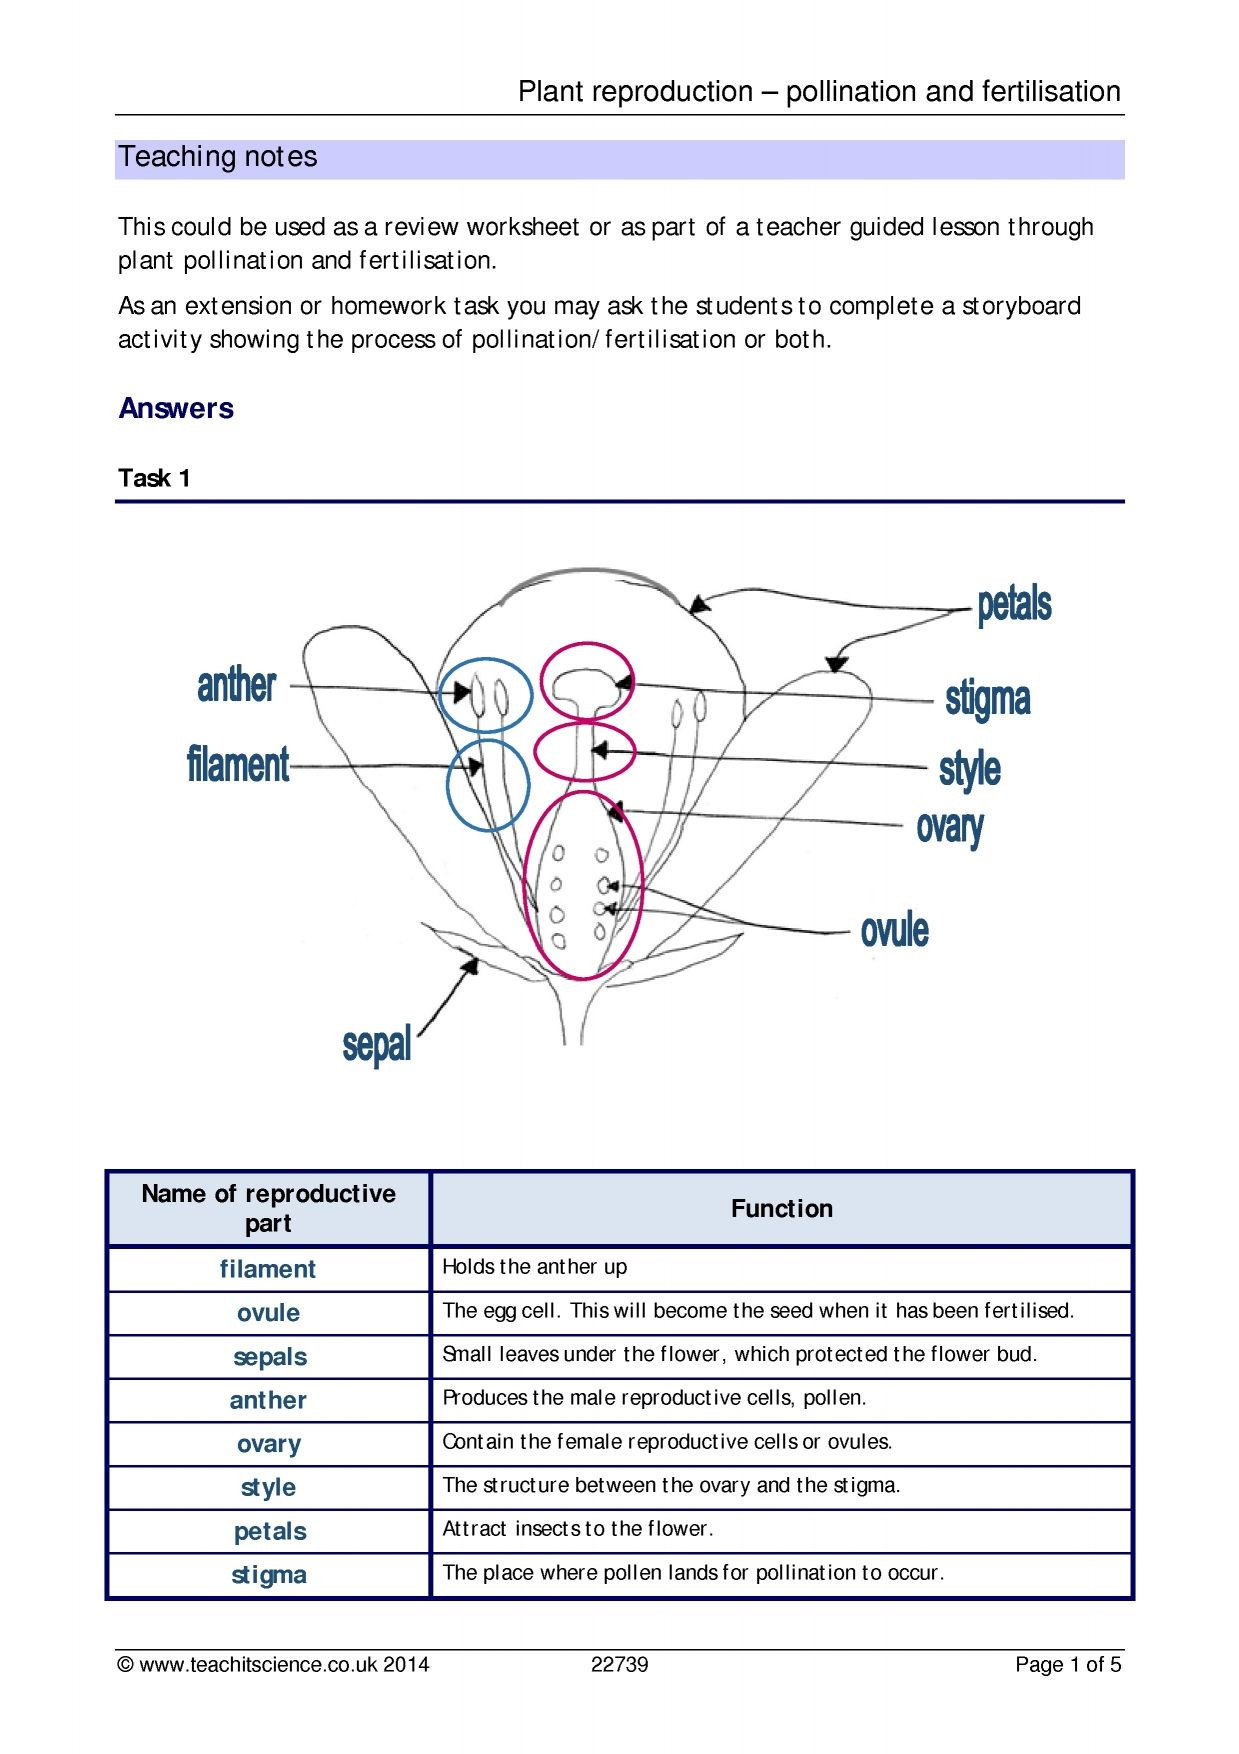 Free Printable Biology Worksheets Plant Reproduction Pollination and Fertilisation